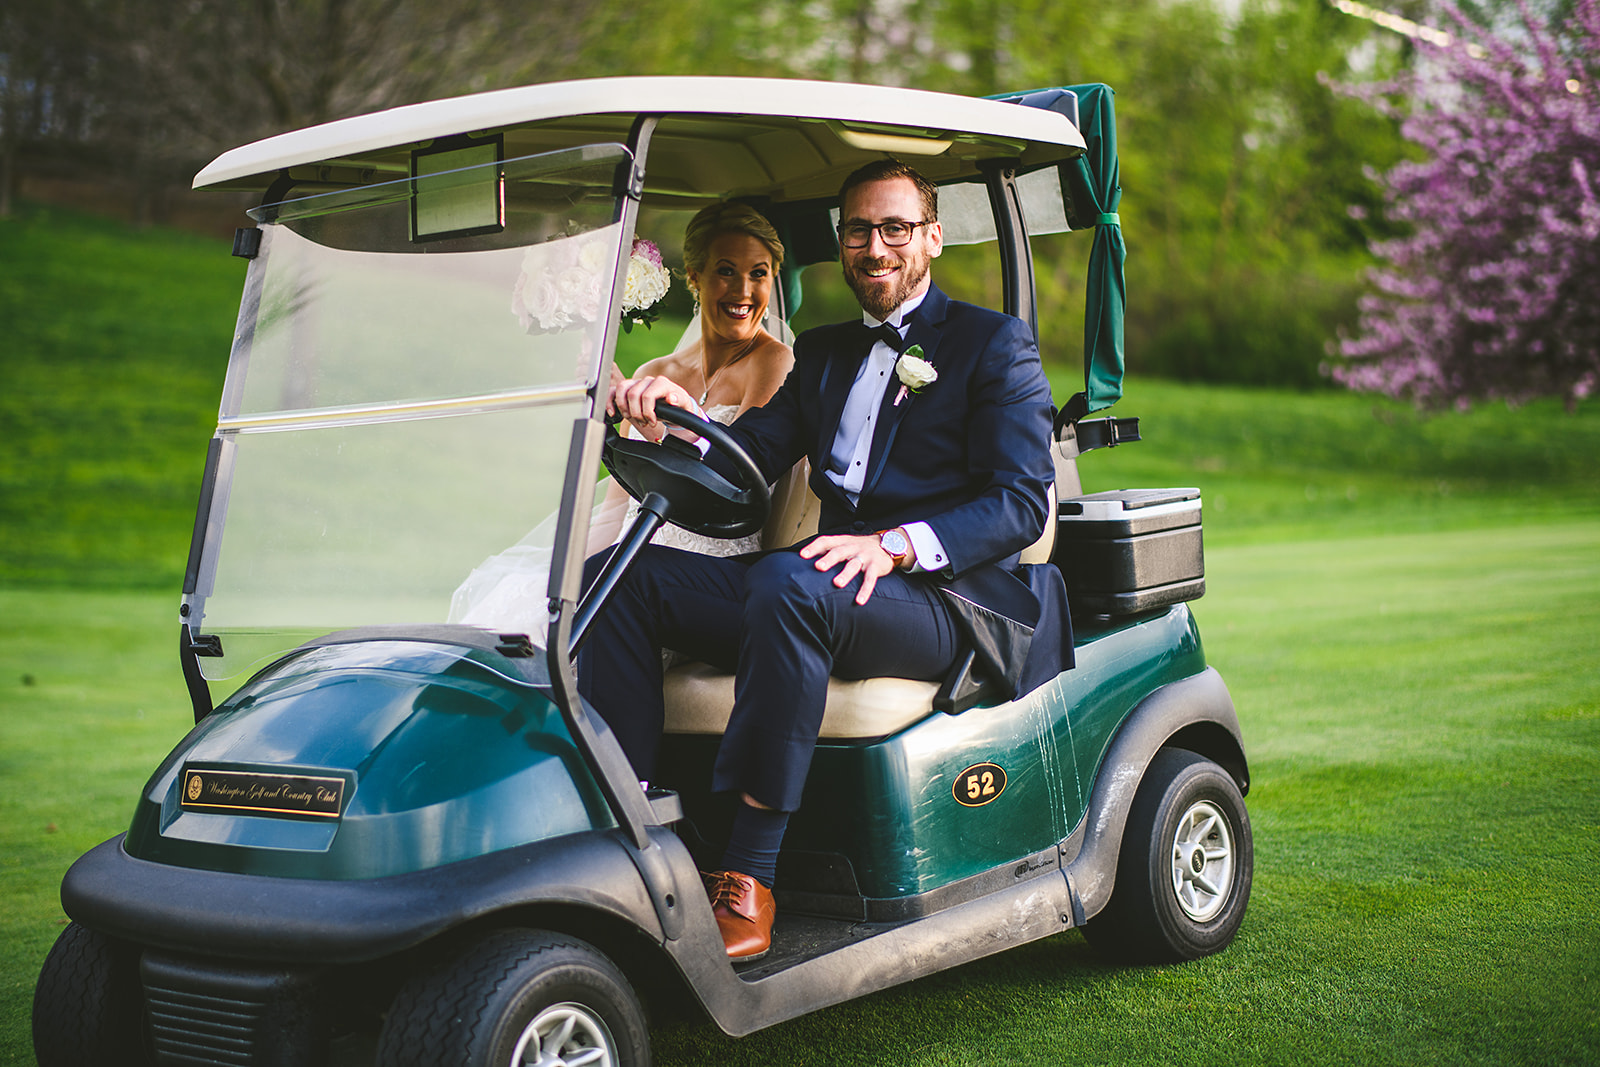 Atelier Ashley Flowers + Sam Hurd Photography + Washington Golf and Country Club + Diamond and Pearl Wedding + golf cart + country club wedding + fun wedding ideas